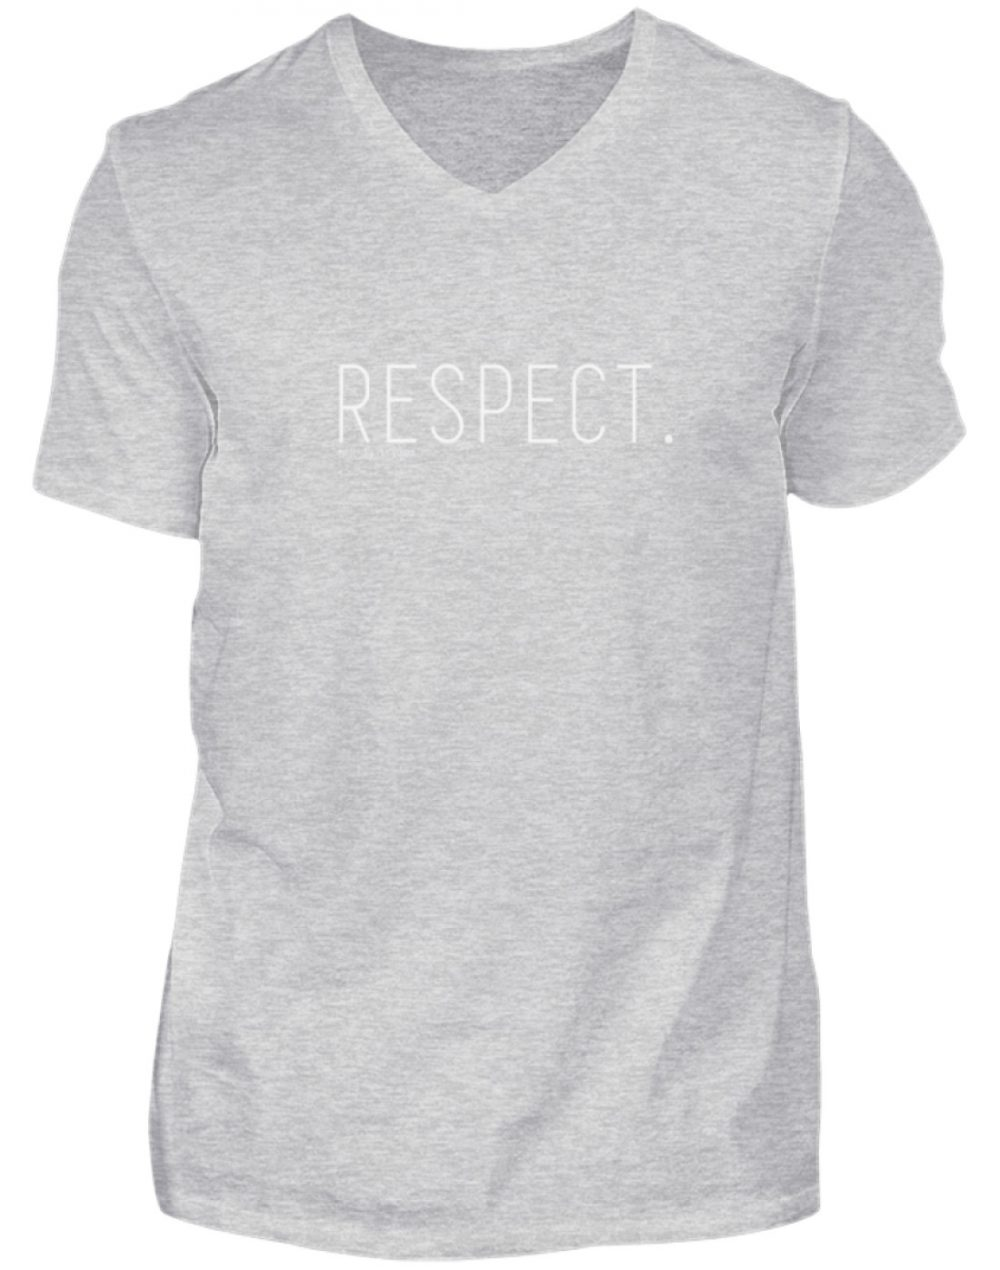 RESPECT. - Herren V-Neck Shirt-236